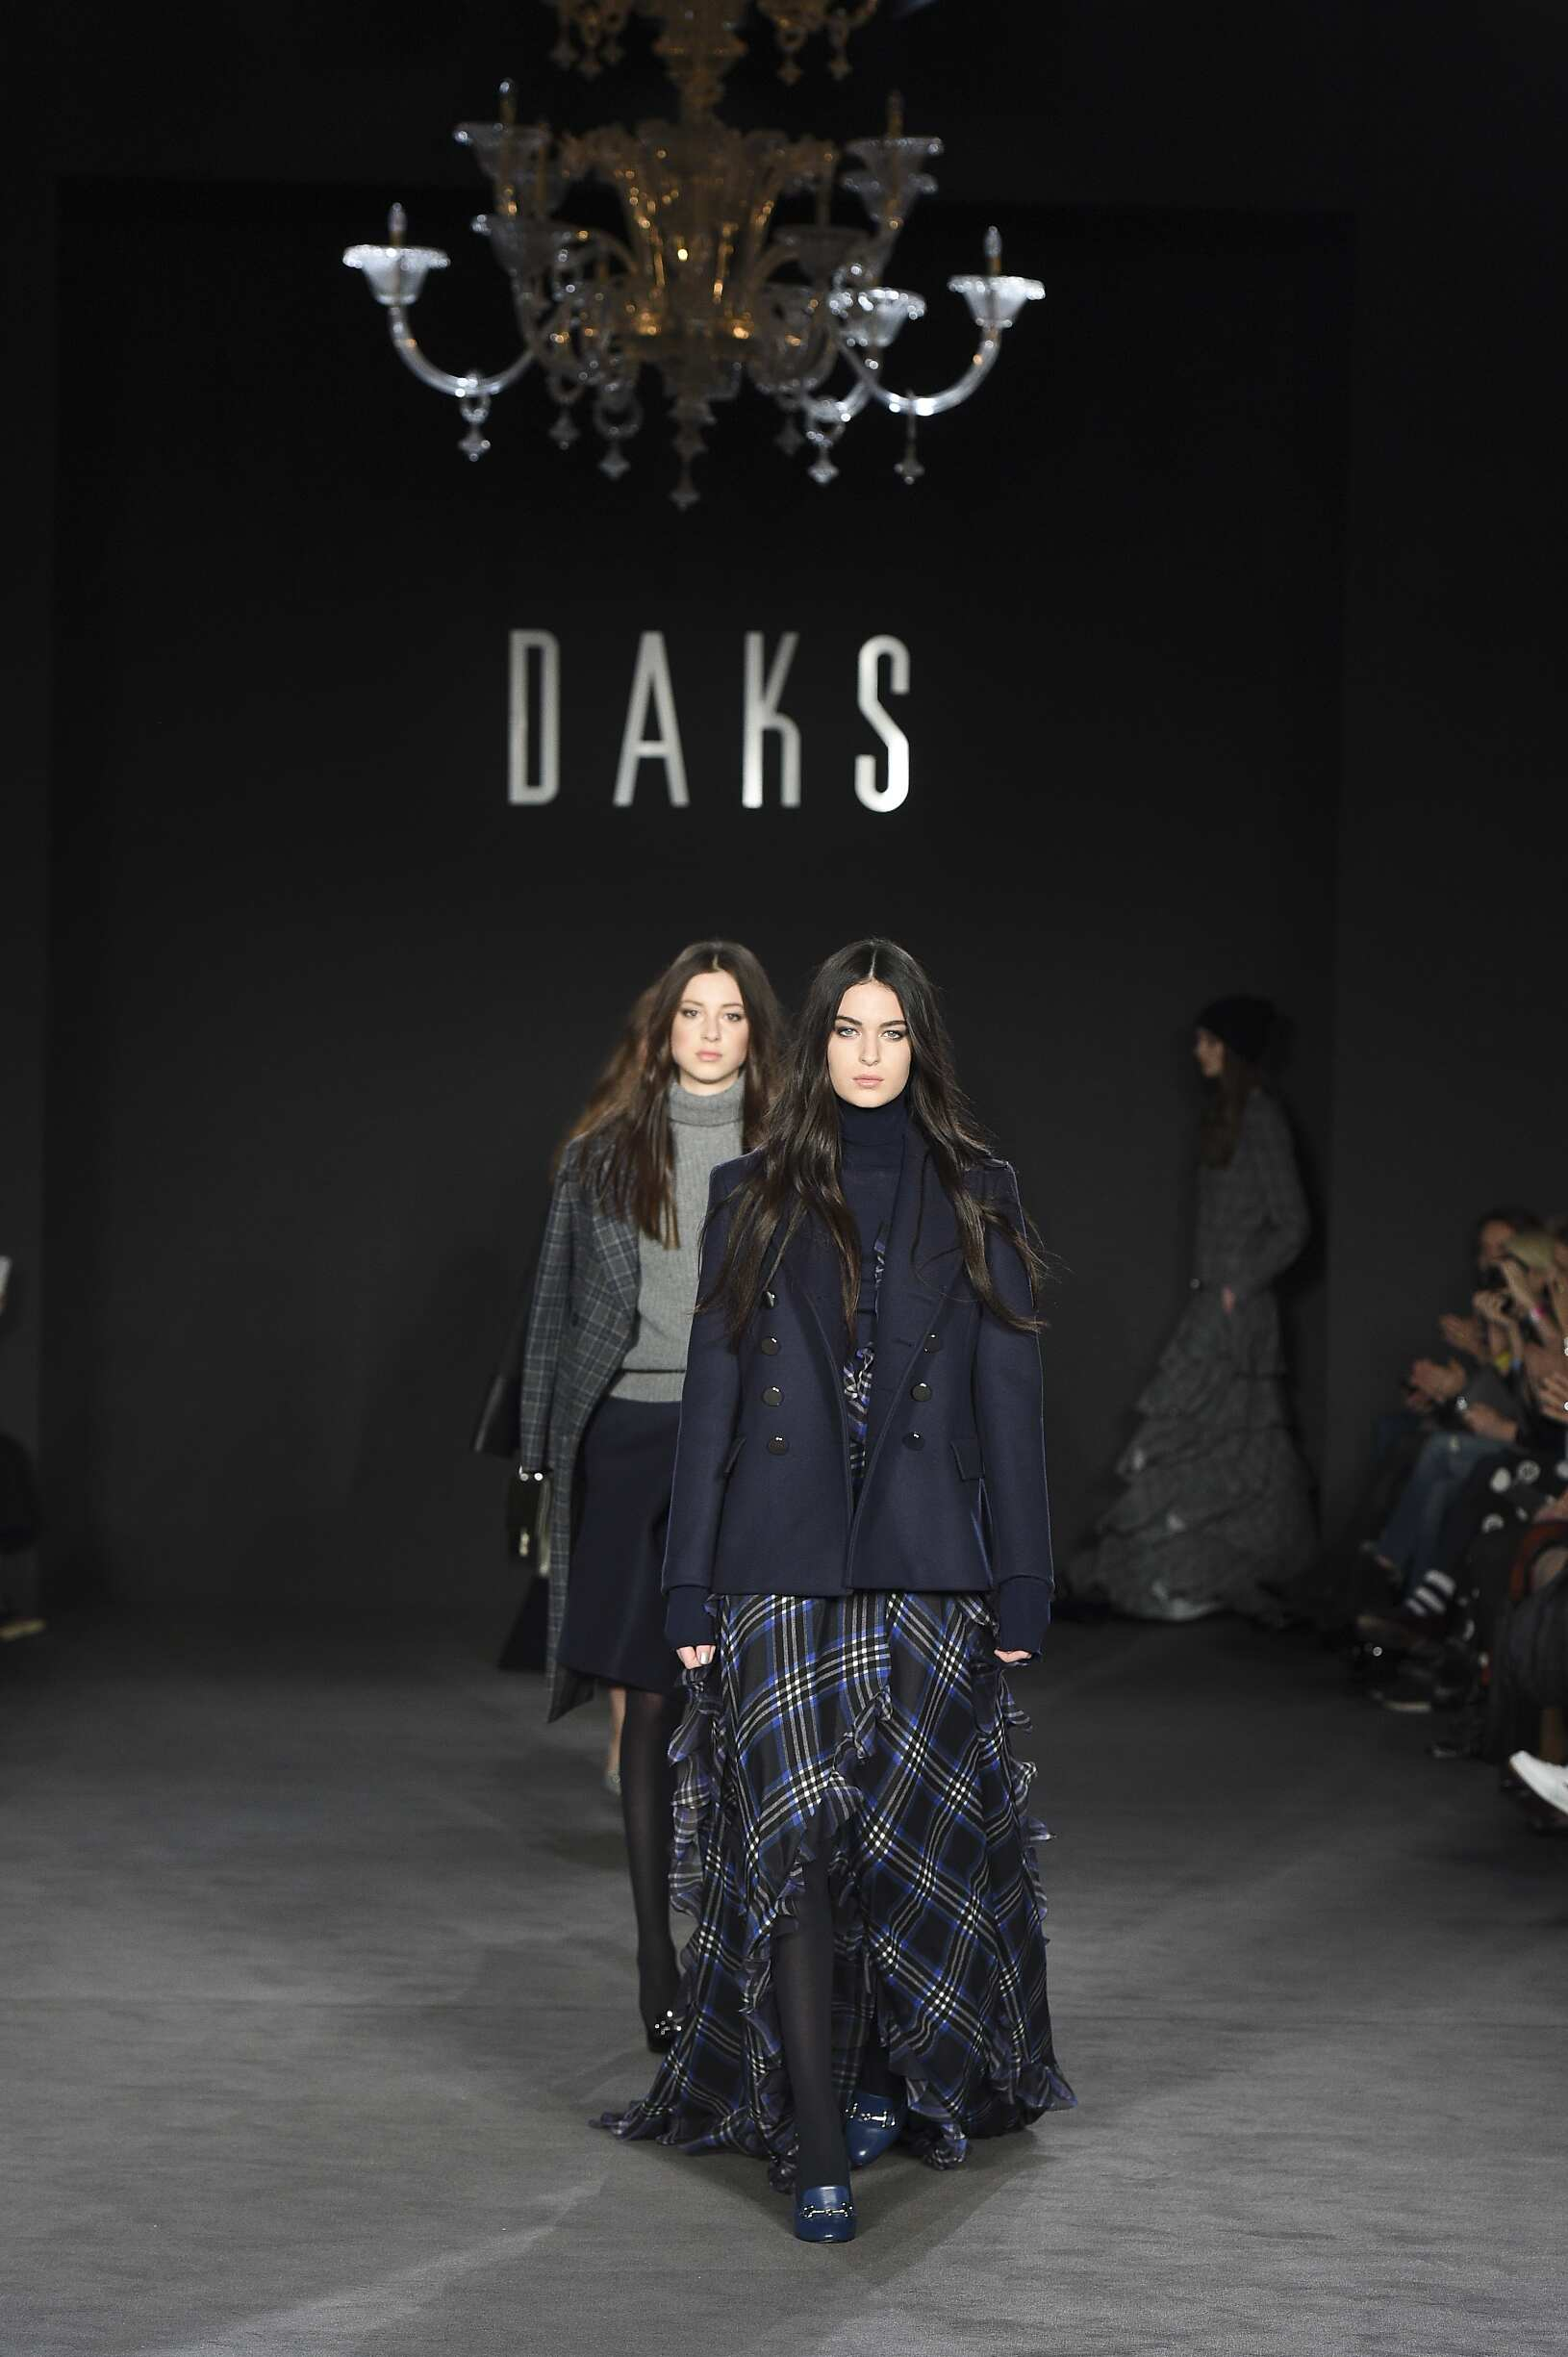 2017 Daks Winter Catwalk